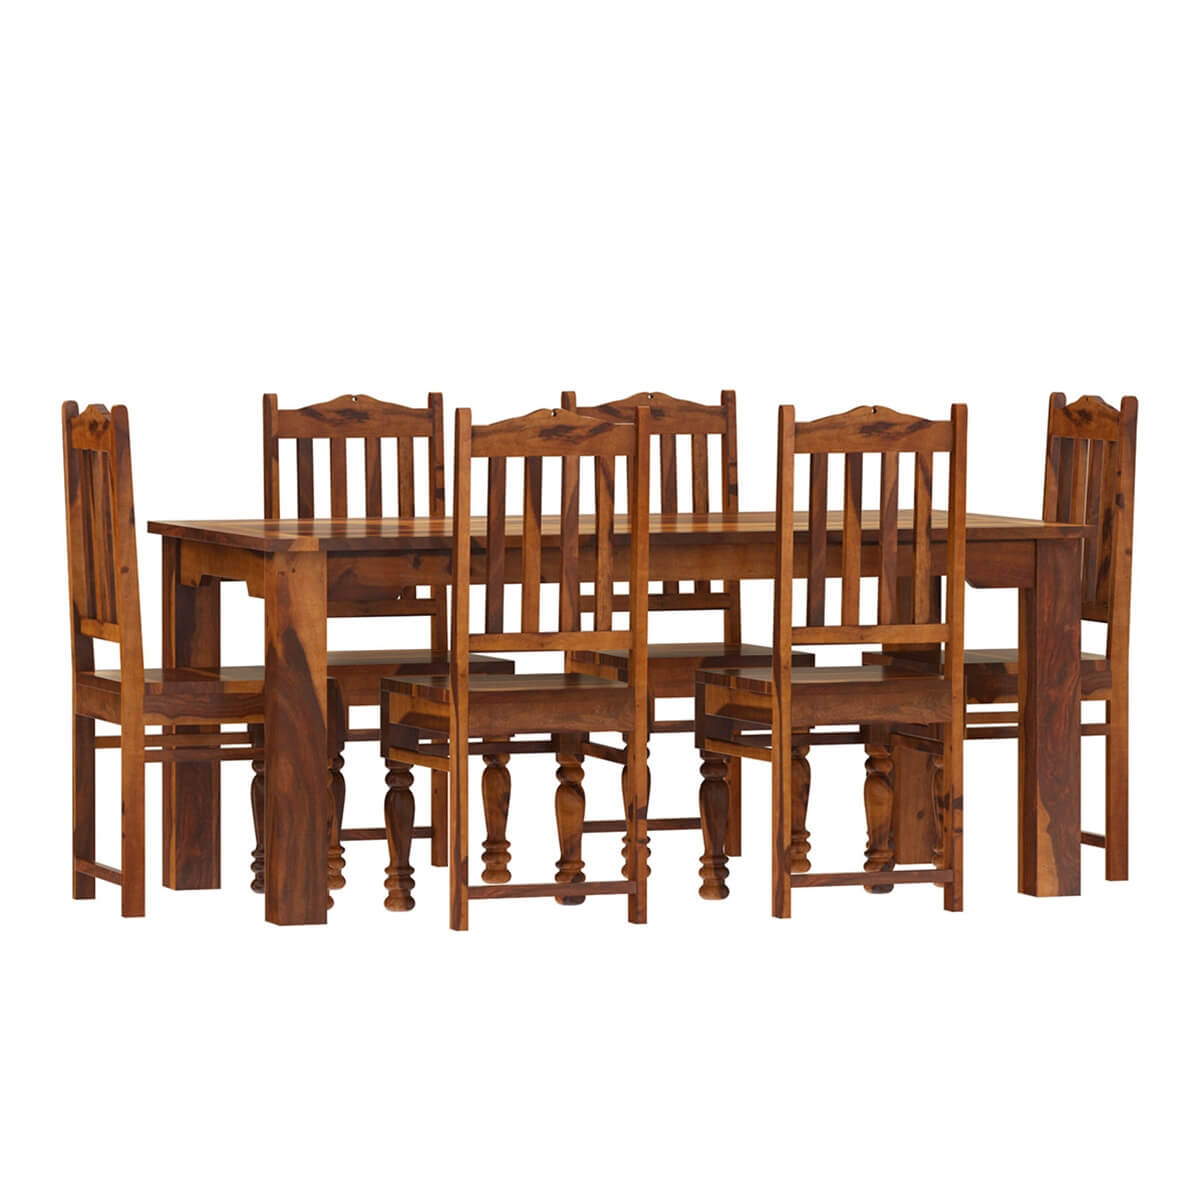 Rustic Dining Chairs Rustic Solid Wood Dallas Dining Table With Chairs Set